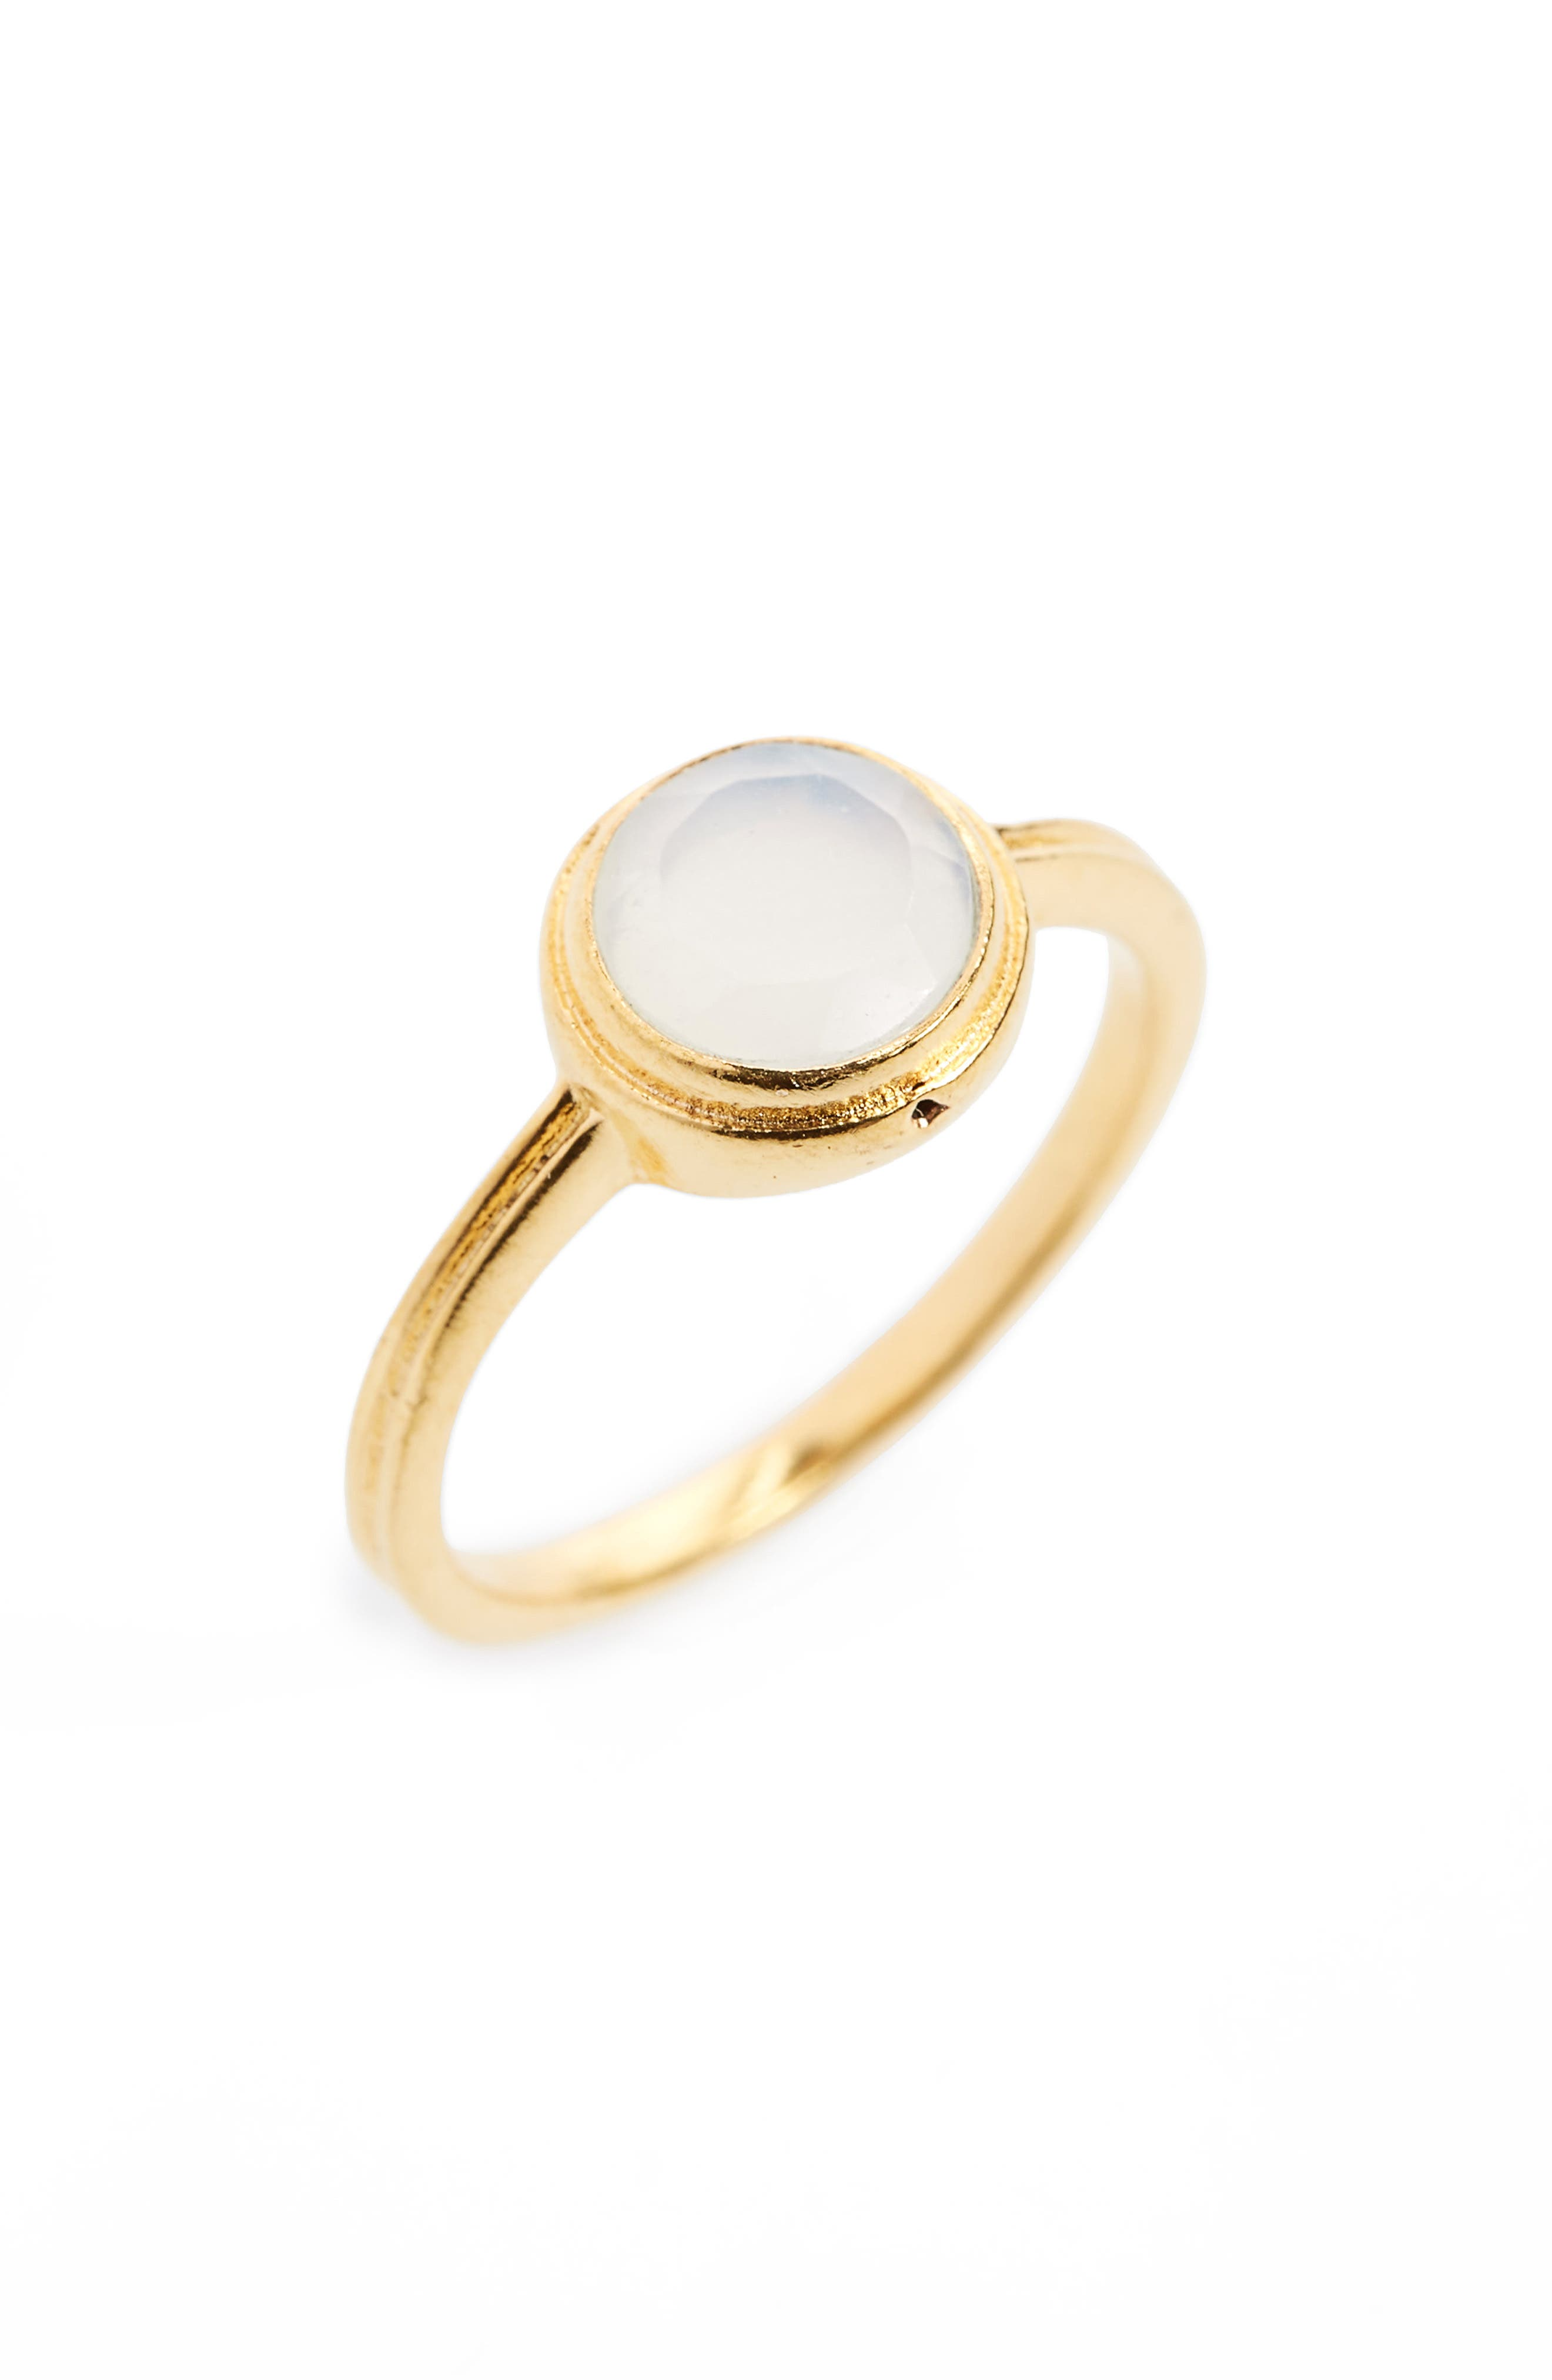 Buttercup Ring,                             Main thumbnail 1, color,                             Opalite